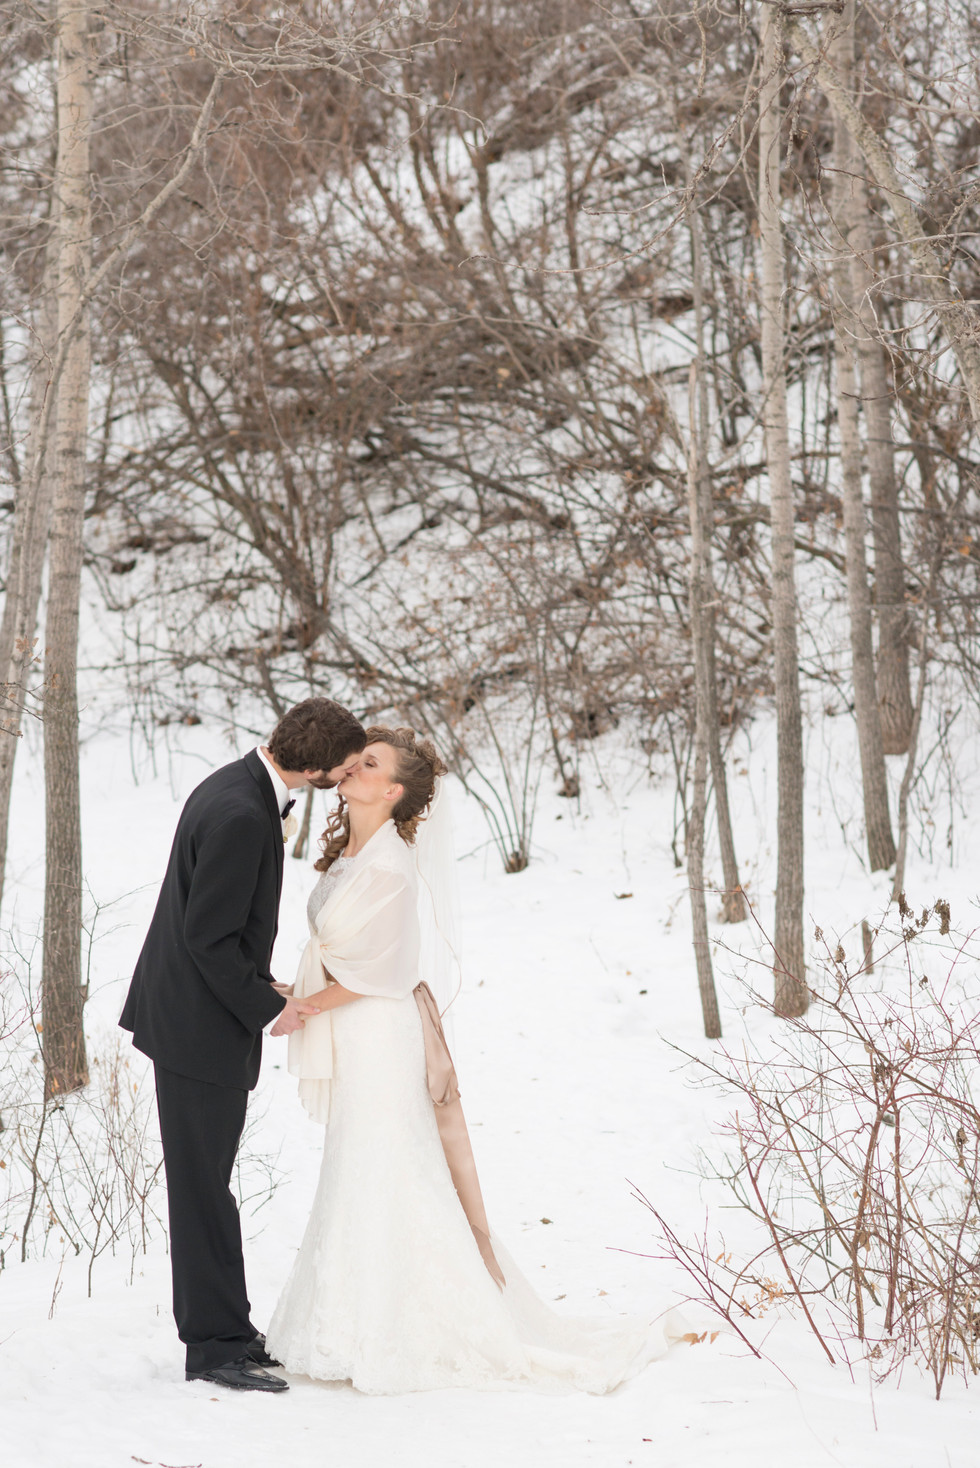 Calgary Winter Wedding - Calgary, AB